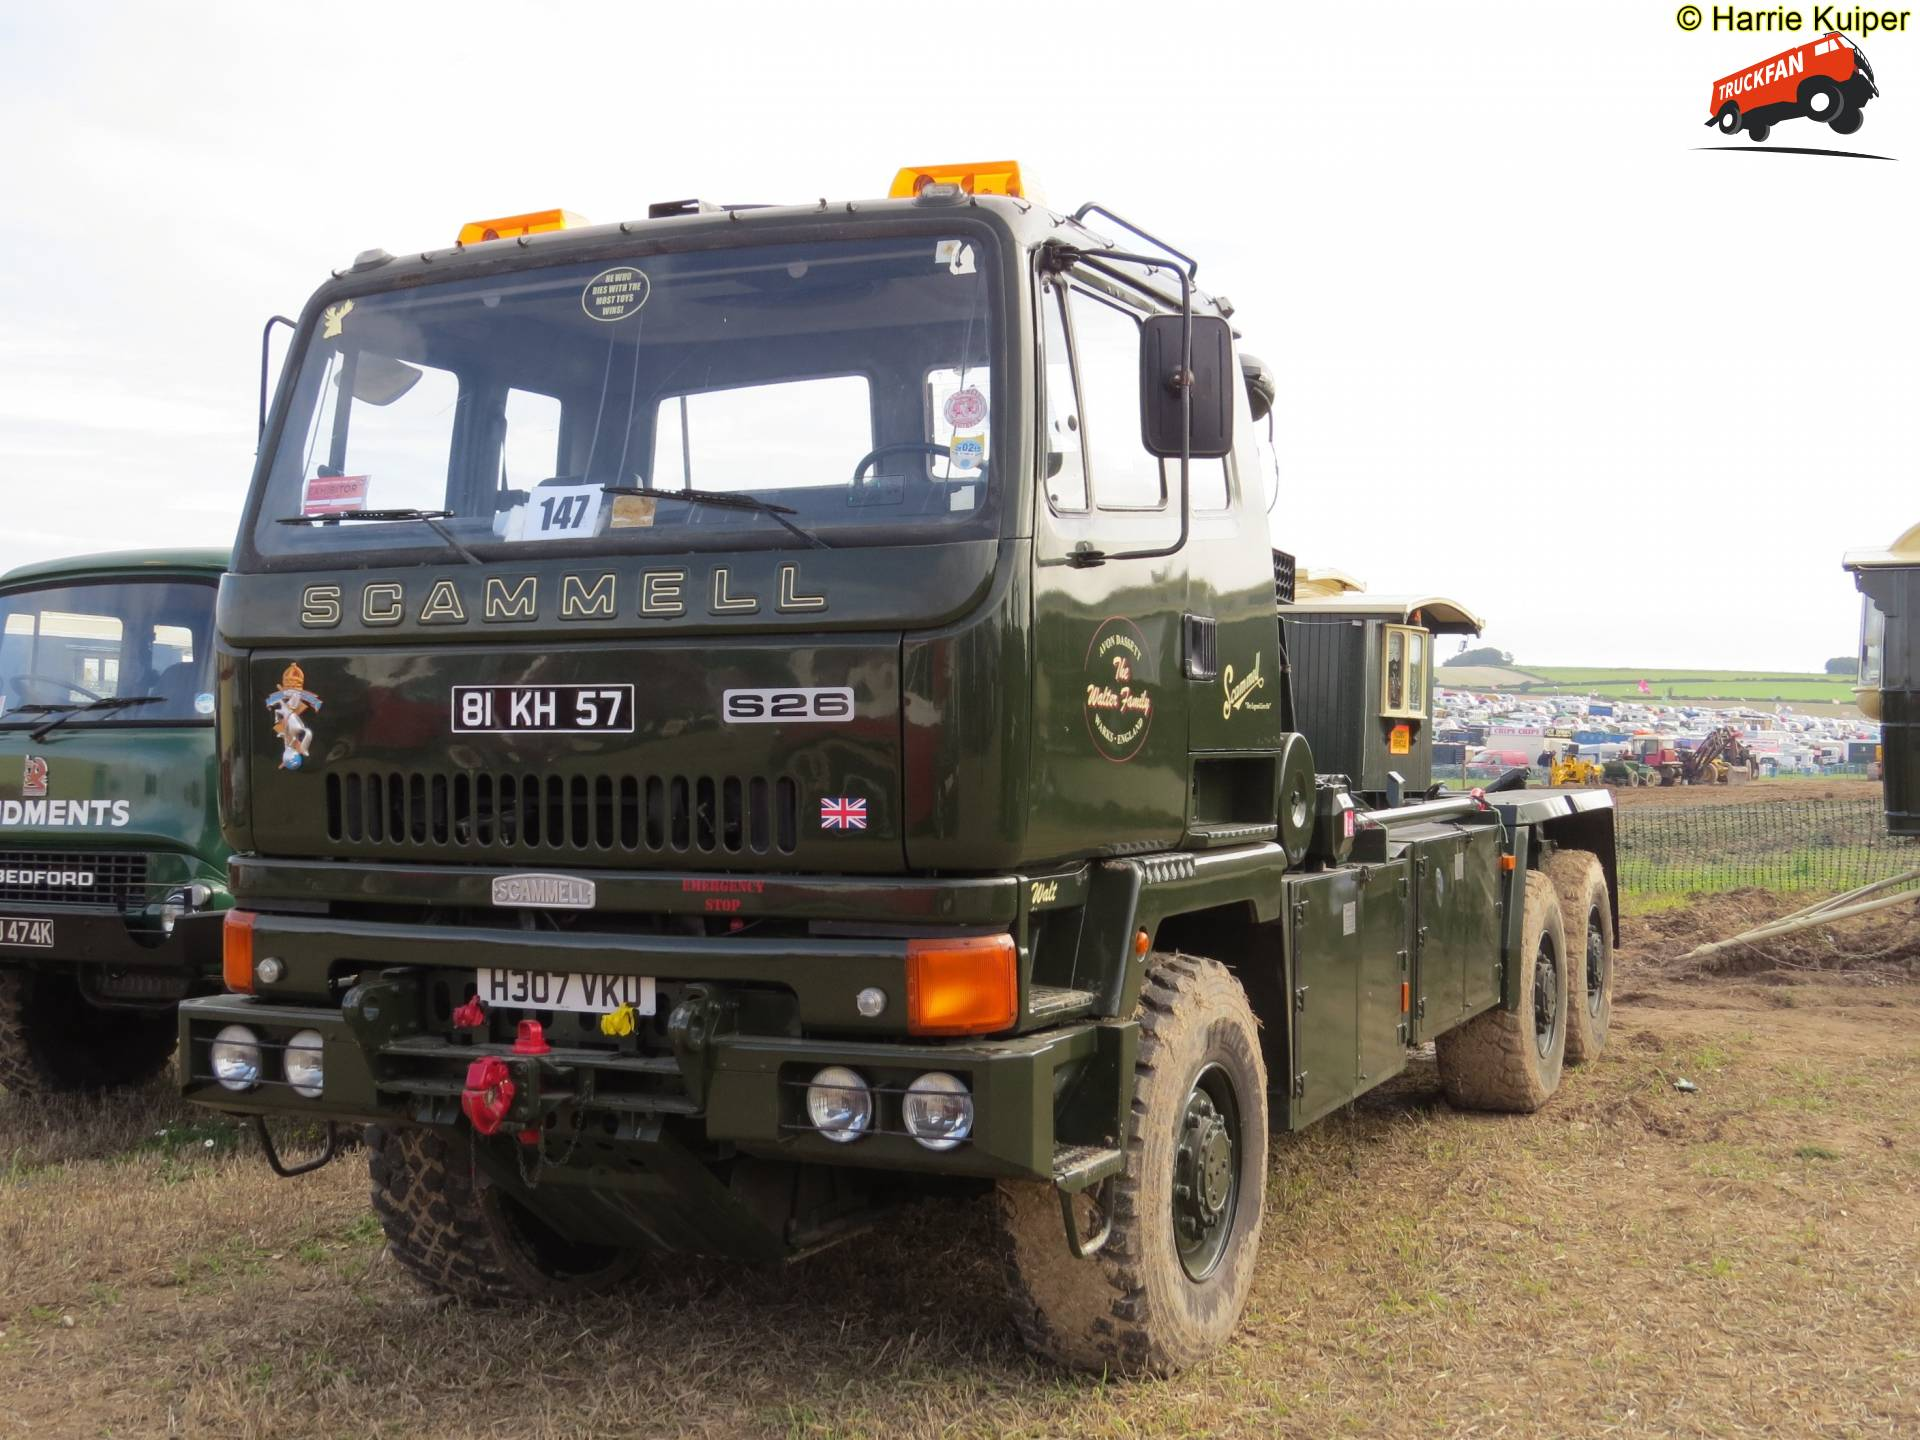 Scammell s26 photo - 5